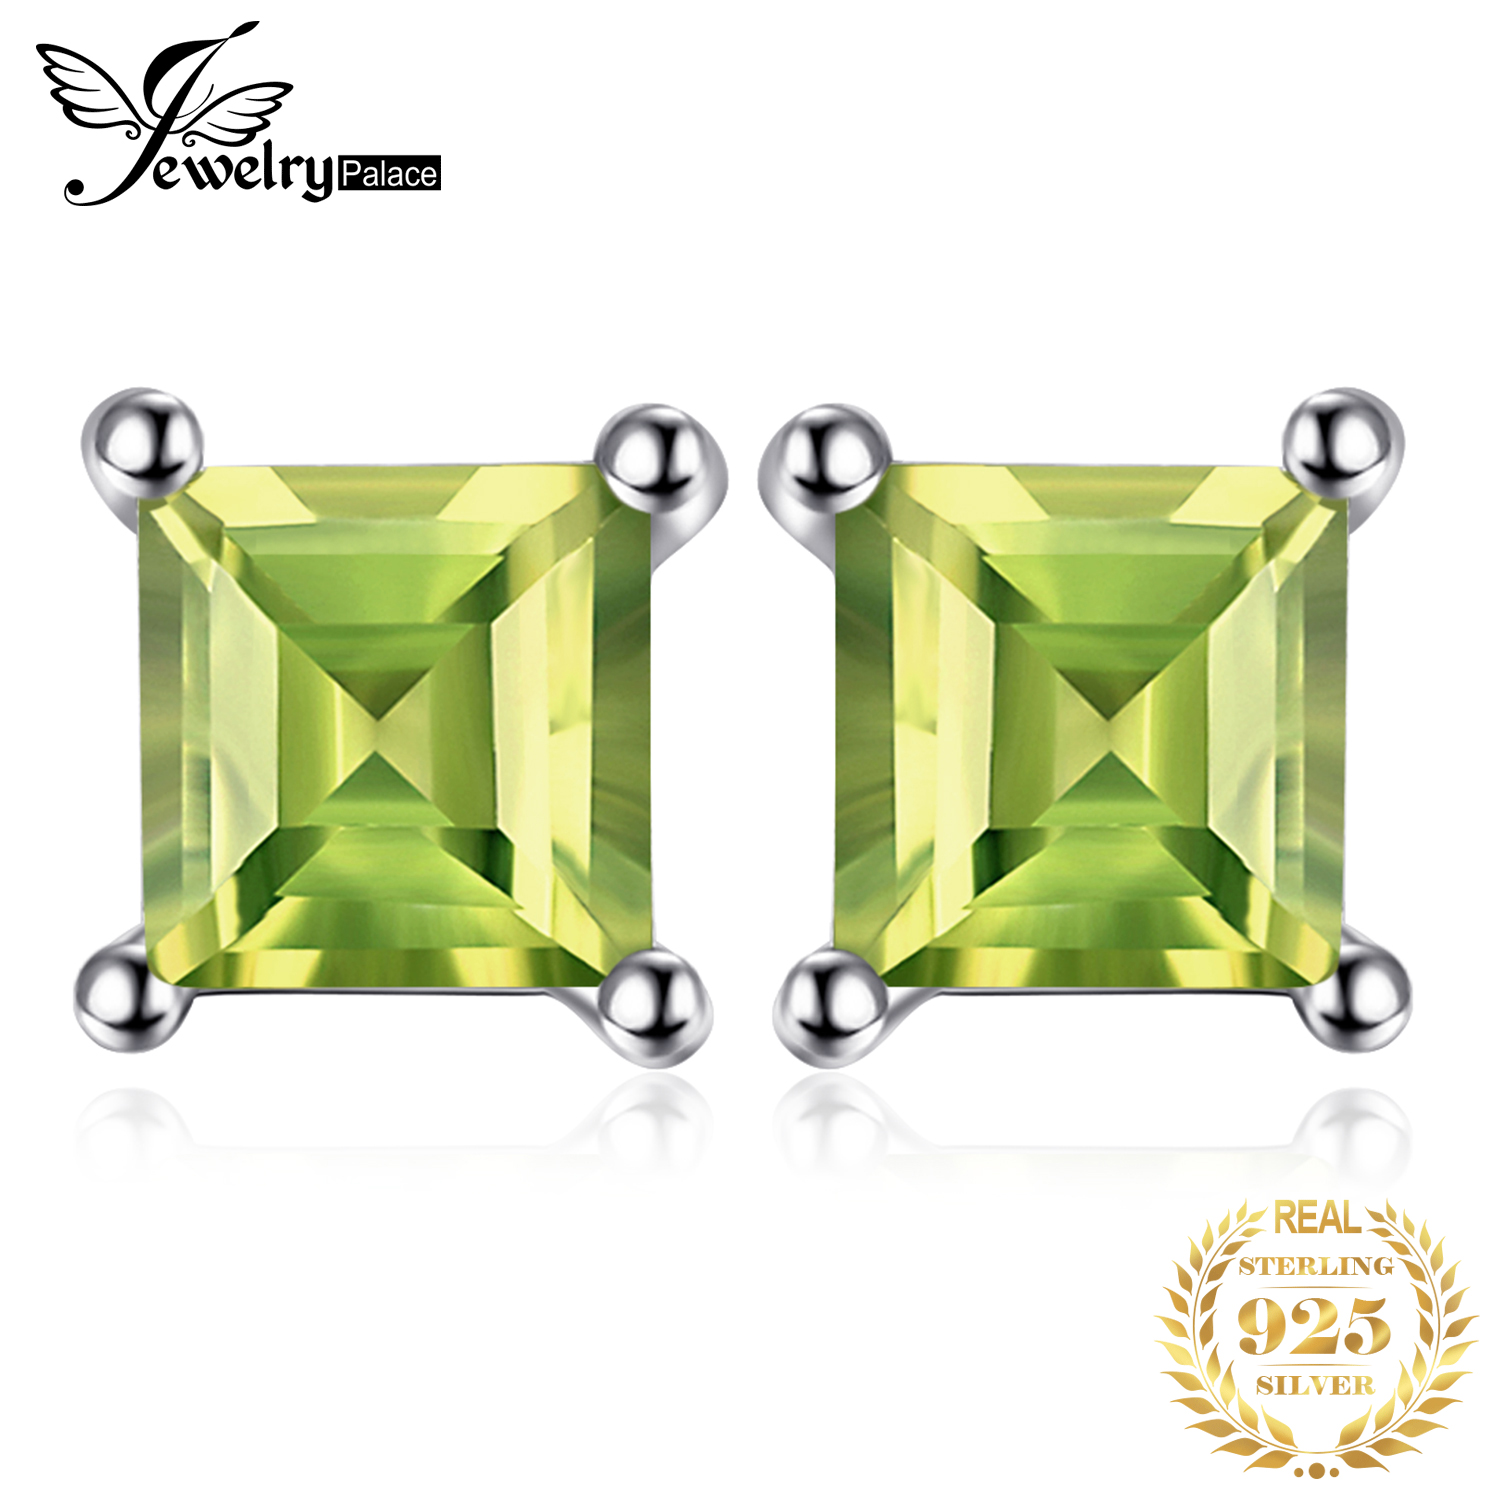 JewelryPalace Genuine Peridot Stud Earrings 925 Sterling Silver Earrings For Women Gemstones Korean Earings Fashion Jewelry 2020